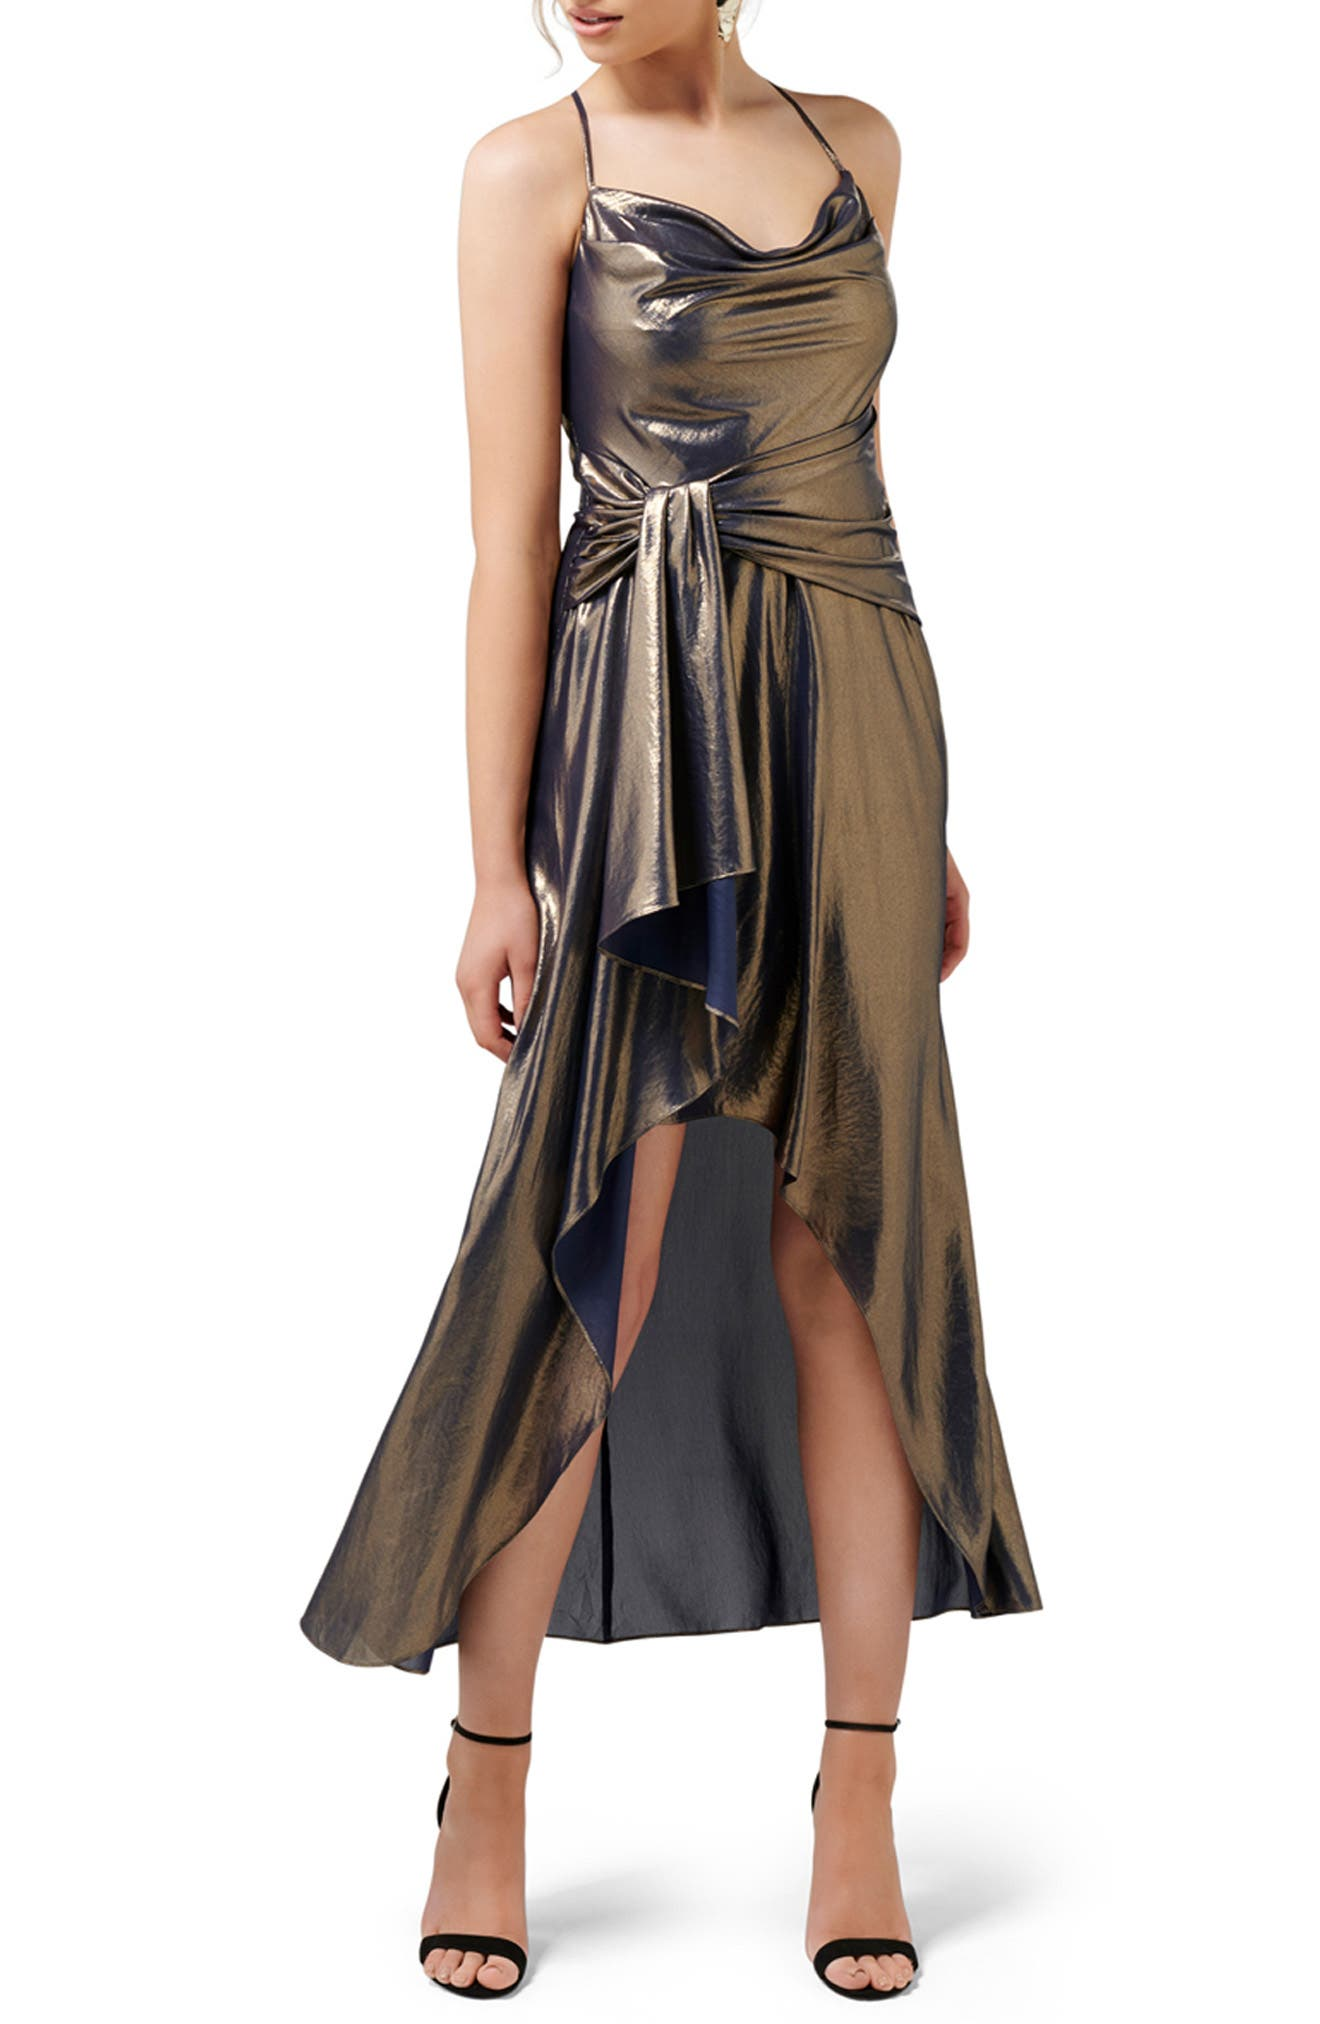 70s Prom, Formal, Evening, Party Dresses Womens Ever New Charli Metallic Cowl Neck Maxi Dress $179.00 AT vintagedancer.com